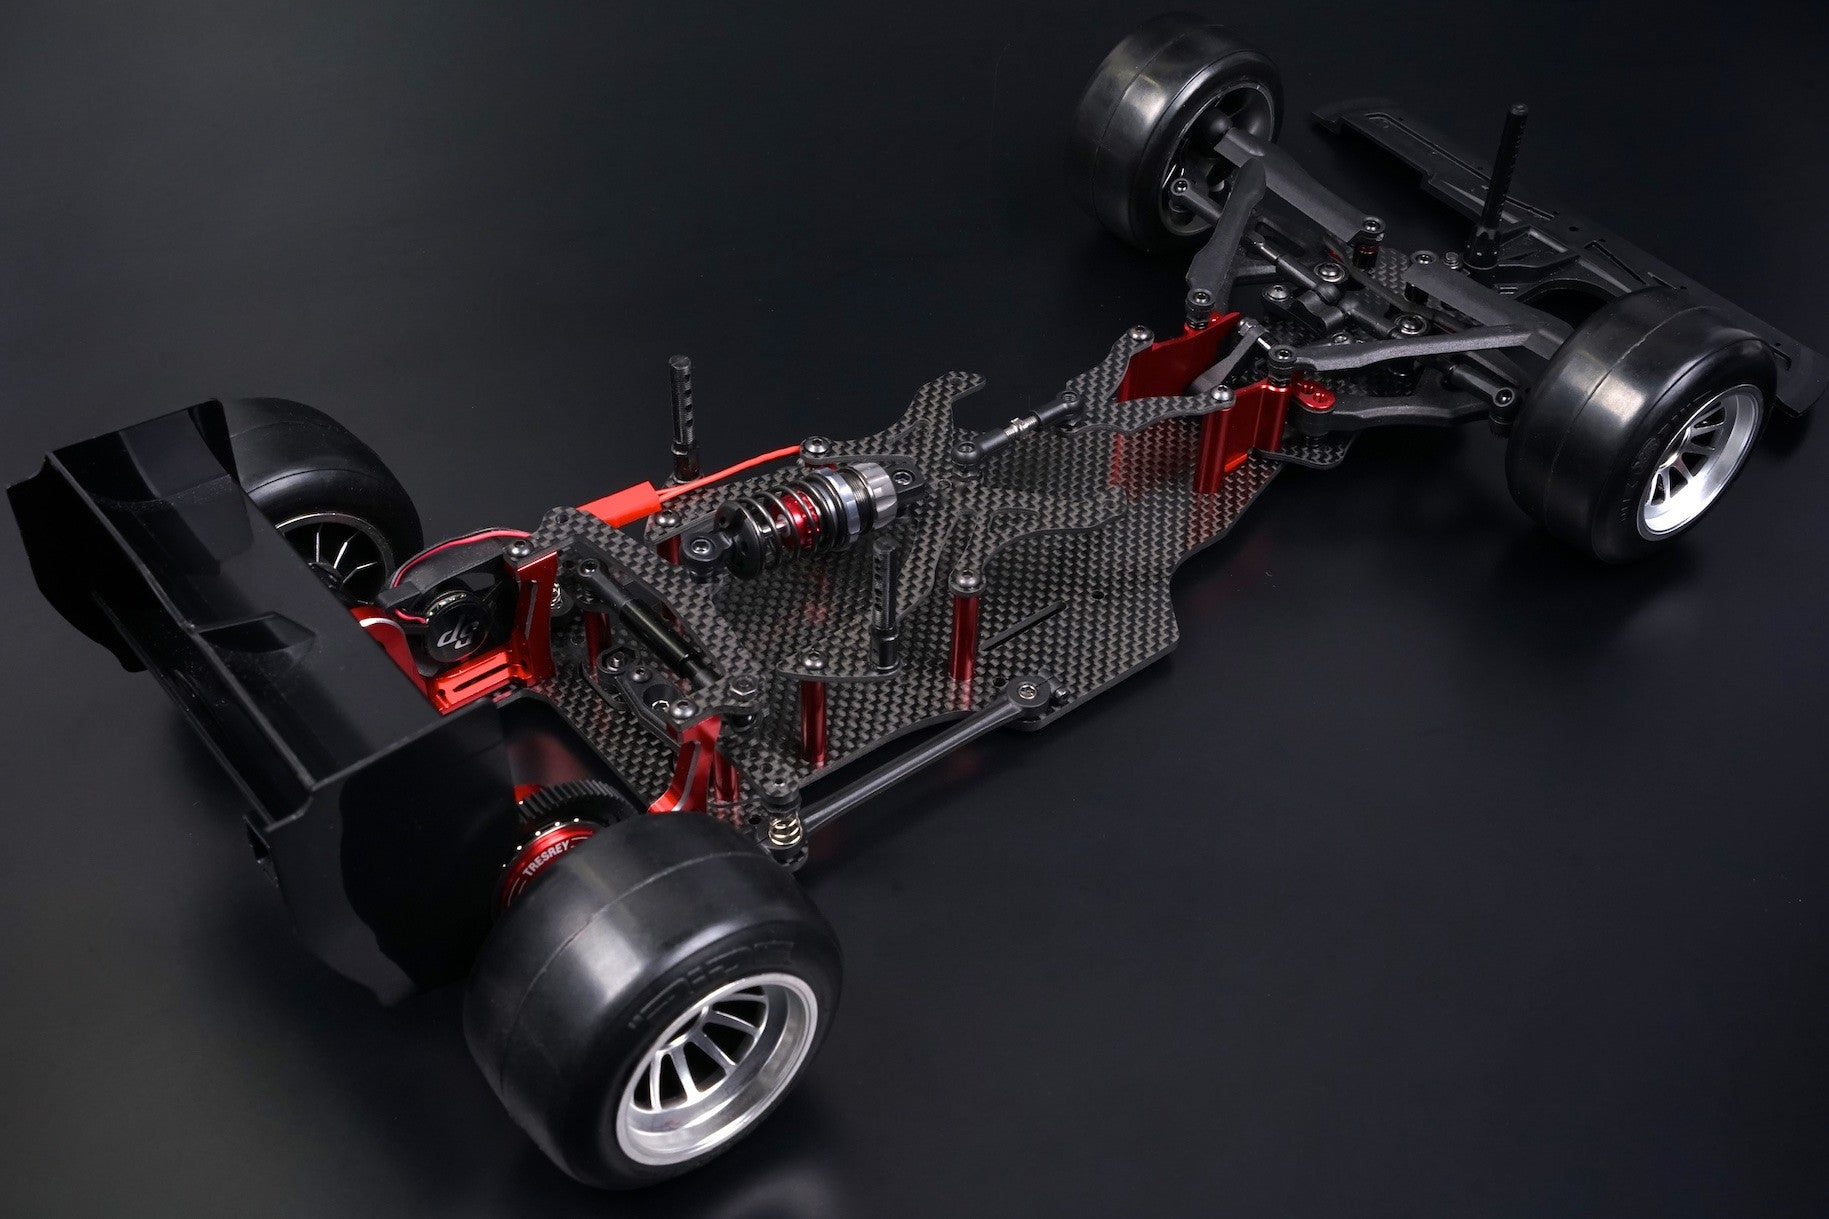 Speed Passion SP1.1 F1 Racing Car Kit SPN70002